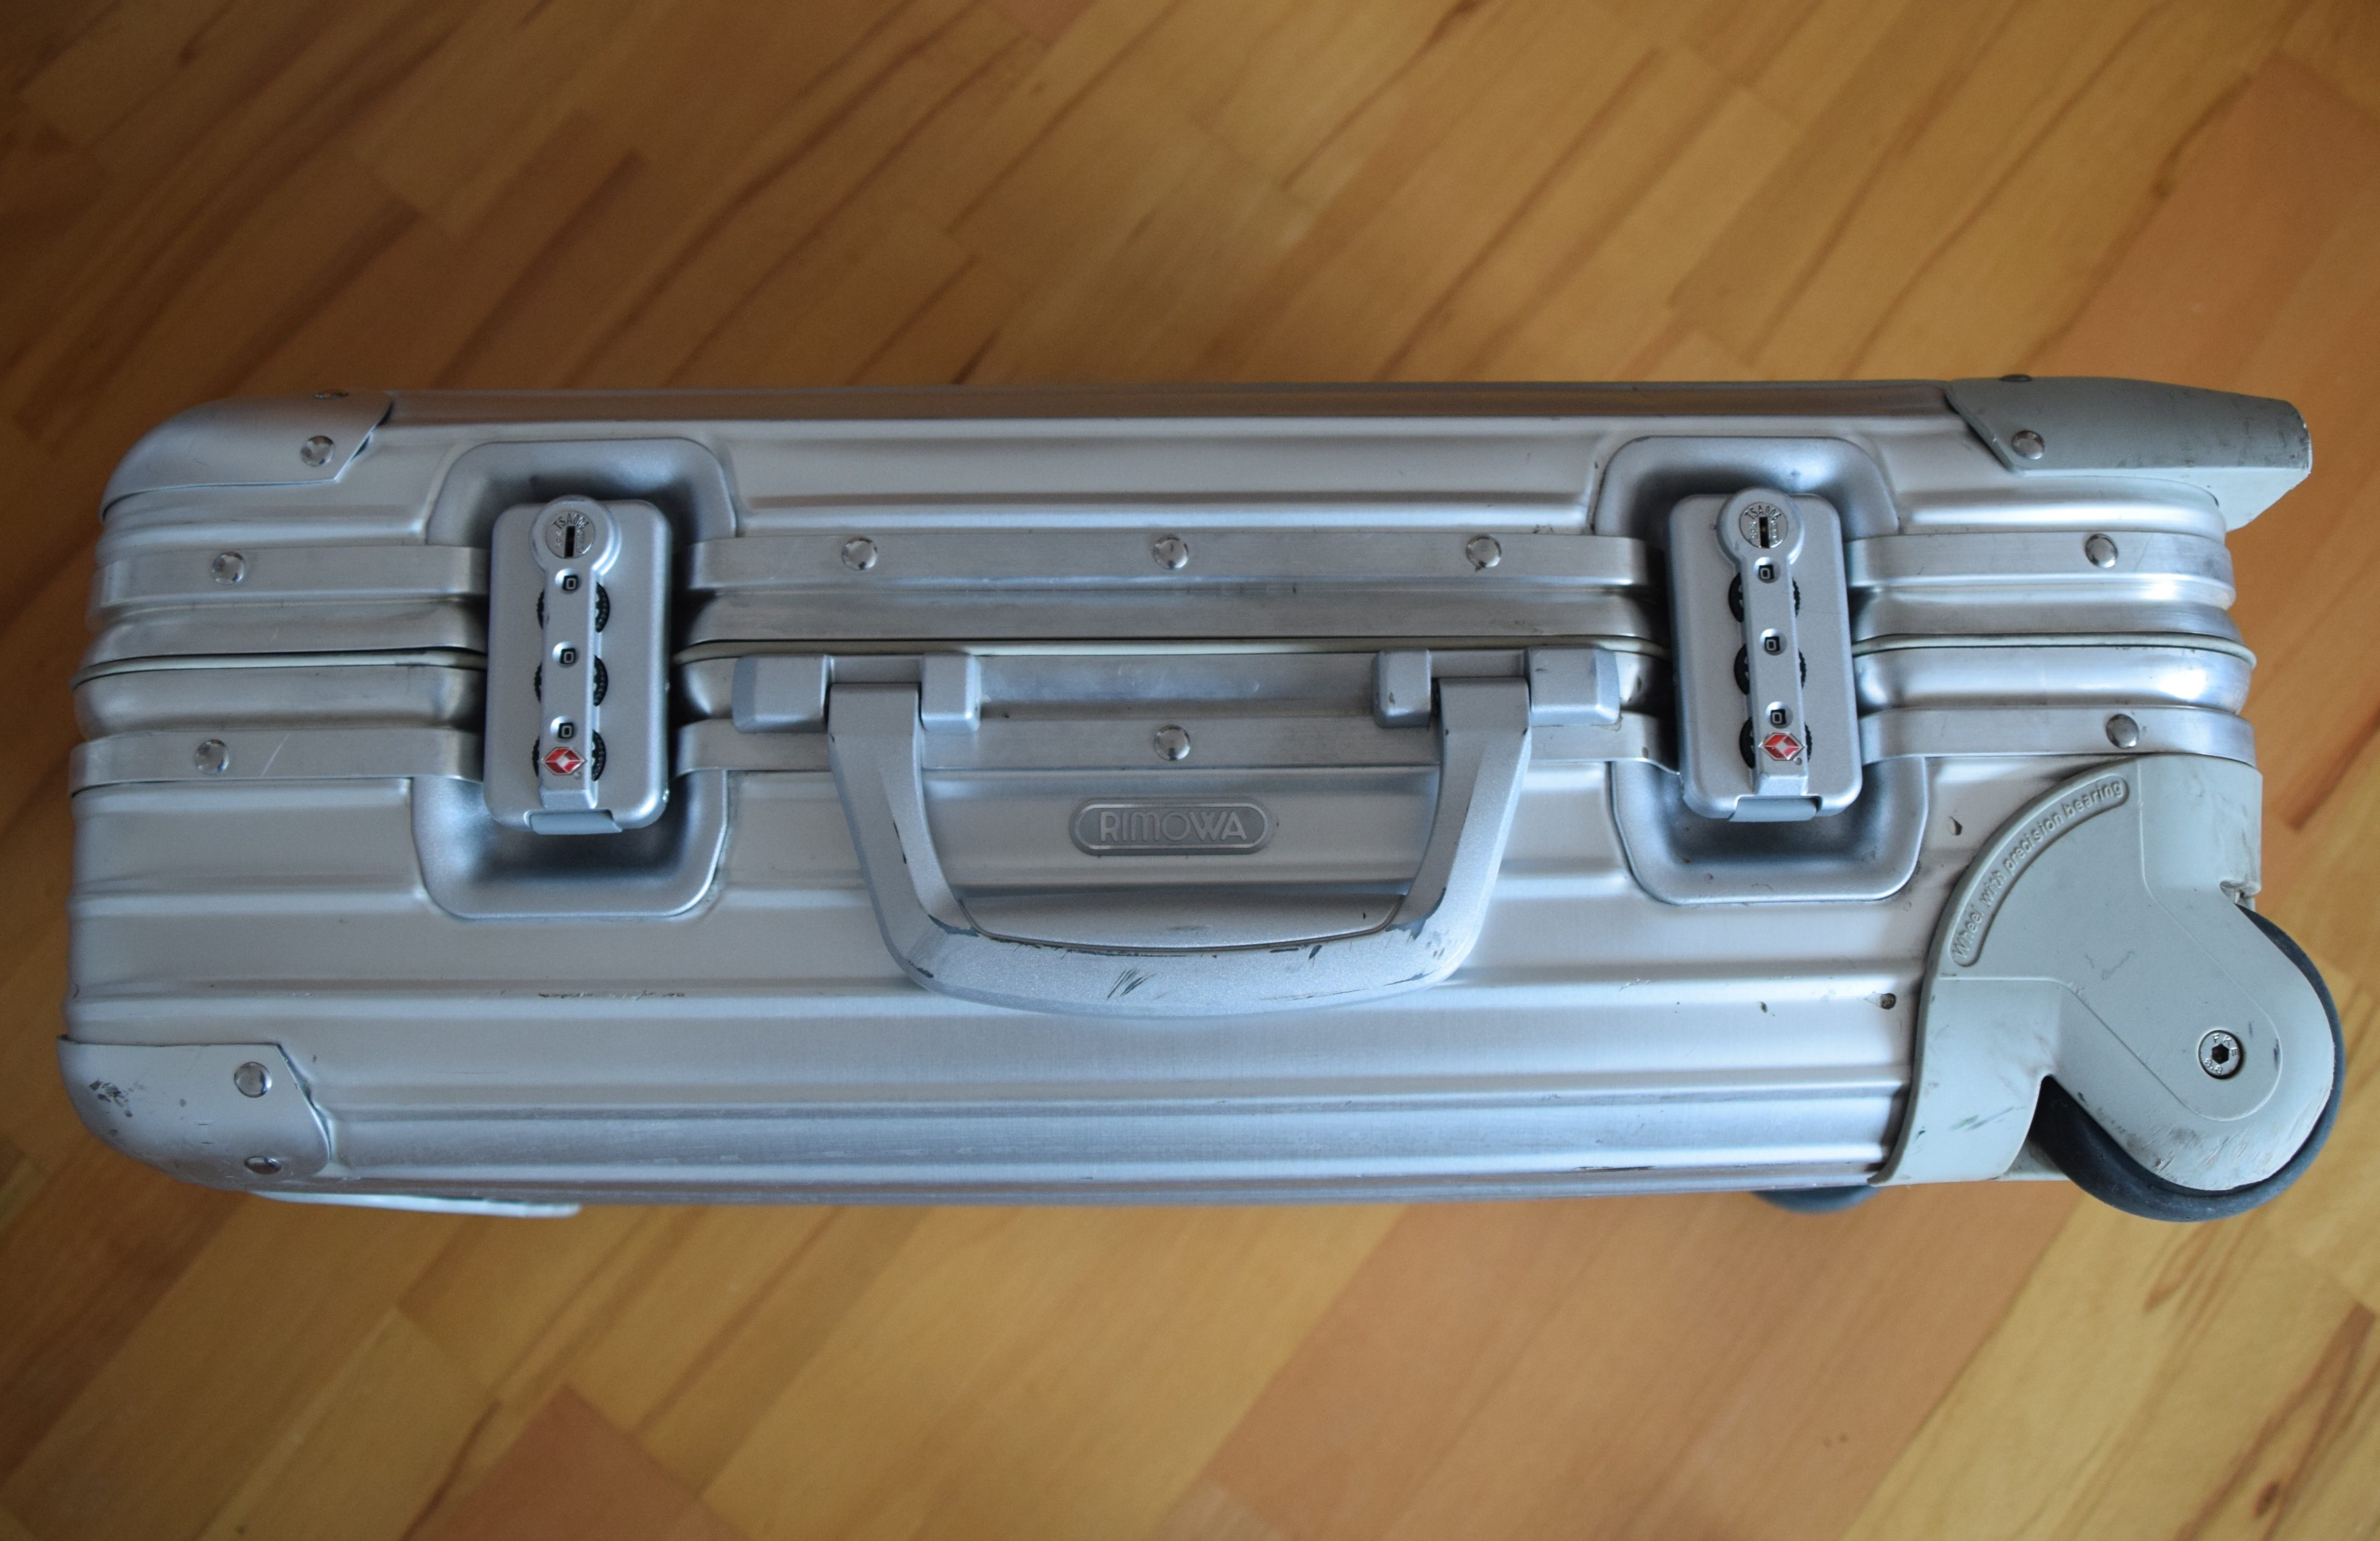 Is a Rimowa suitcase worth the money?